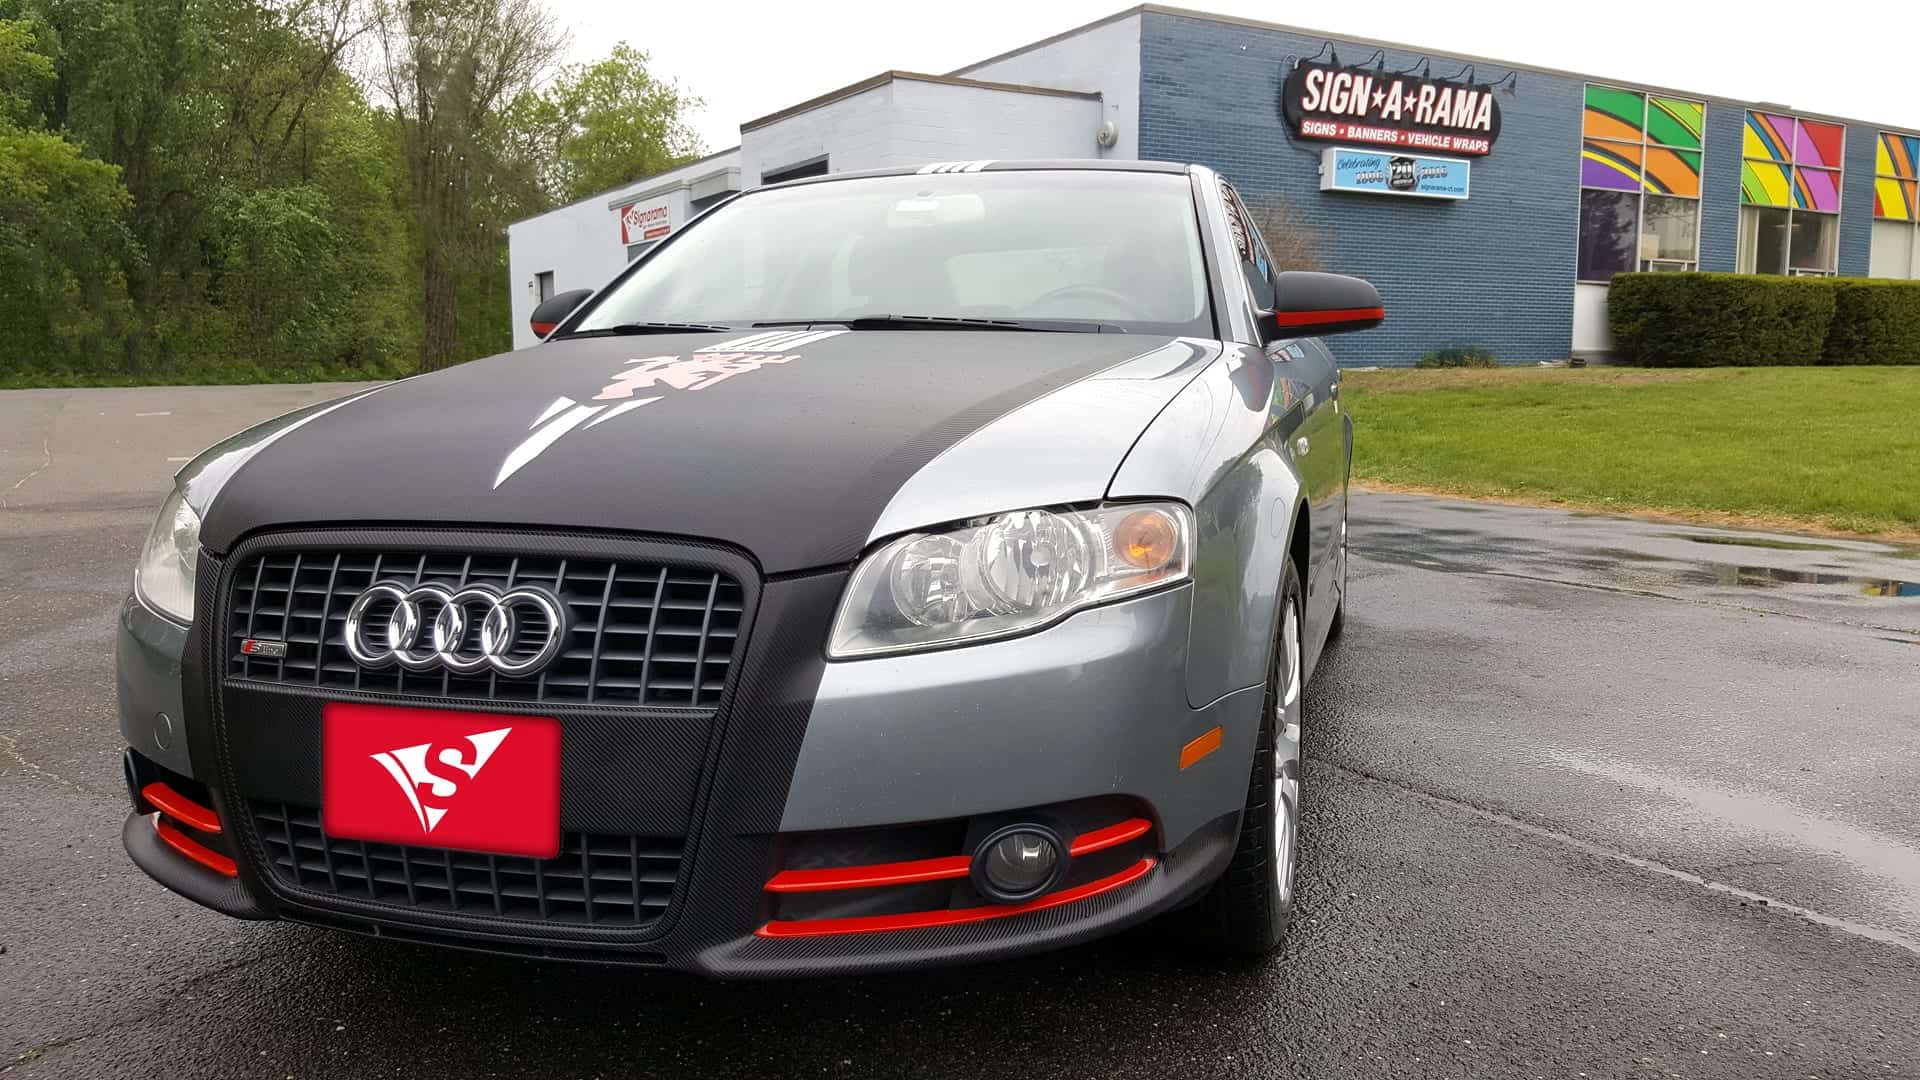 manchester united, A4, Audi, car signs